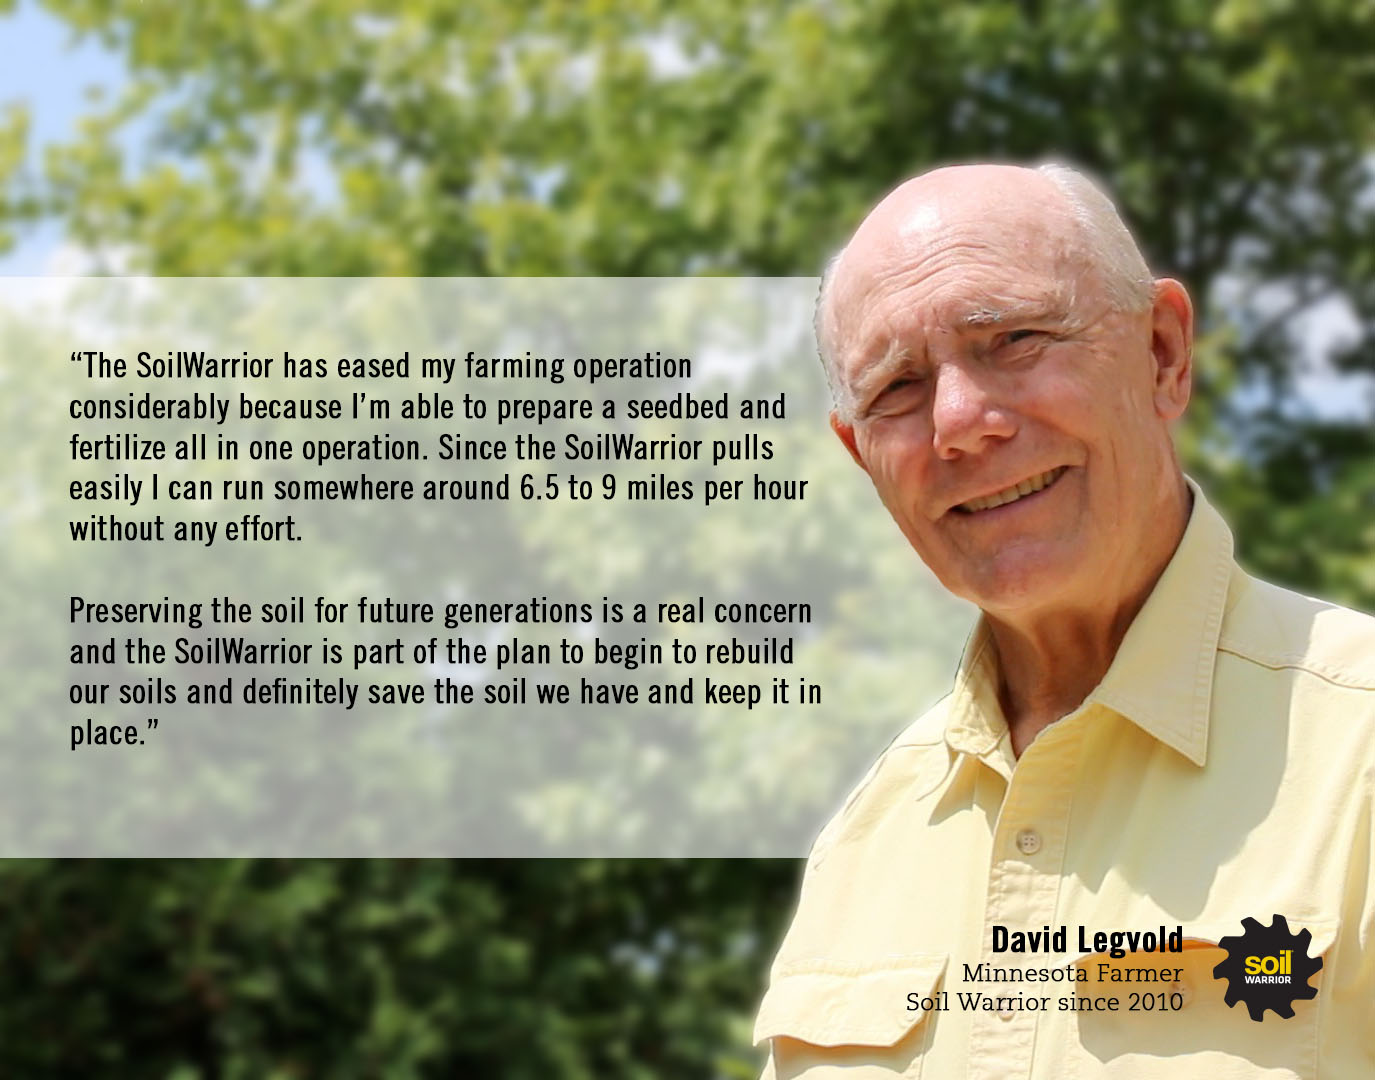 The SoilWarrior has eased my farming operation considerably because I'm able to prepare a seedbed and fertilize all in one operation. - David Legvold